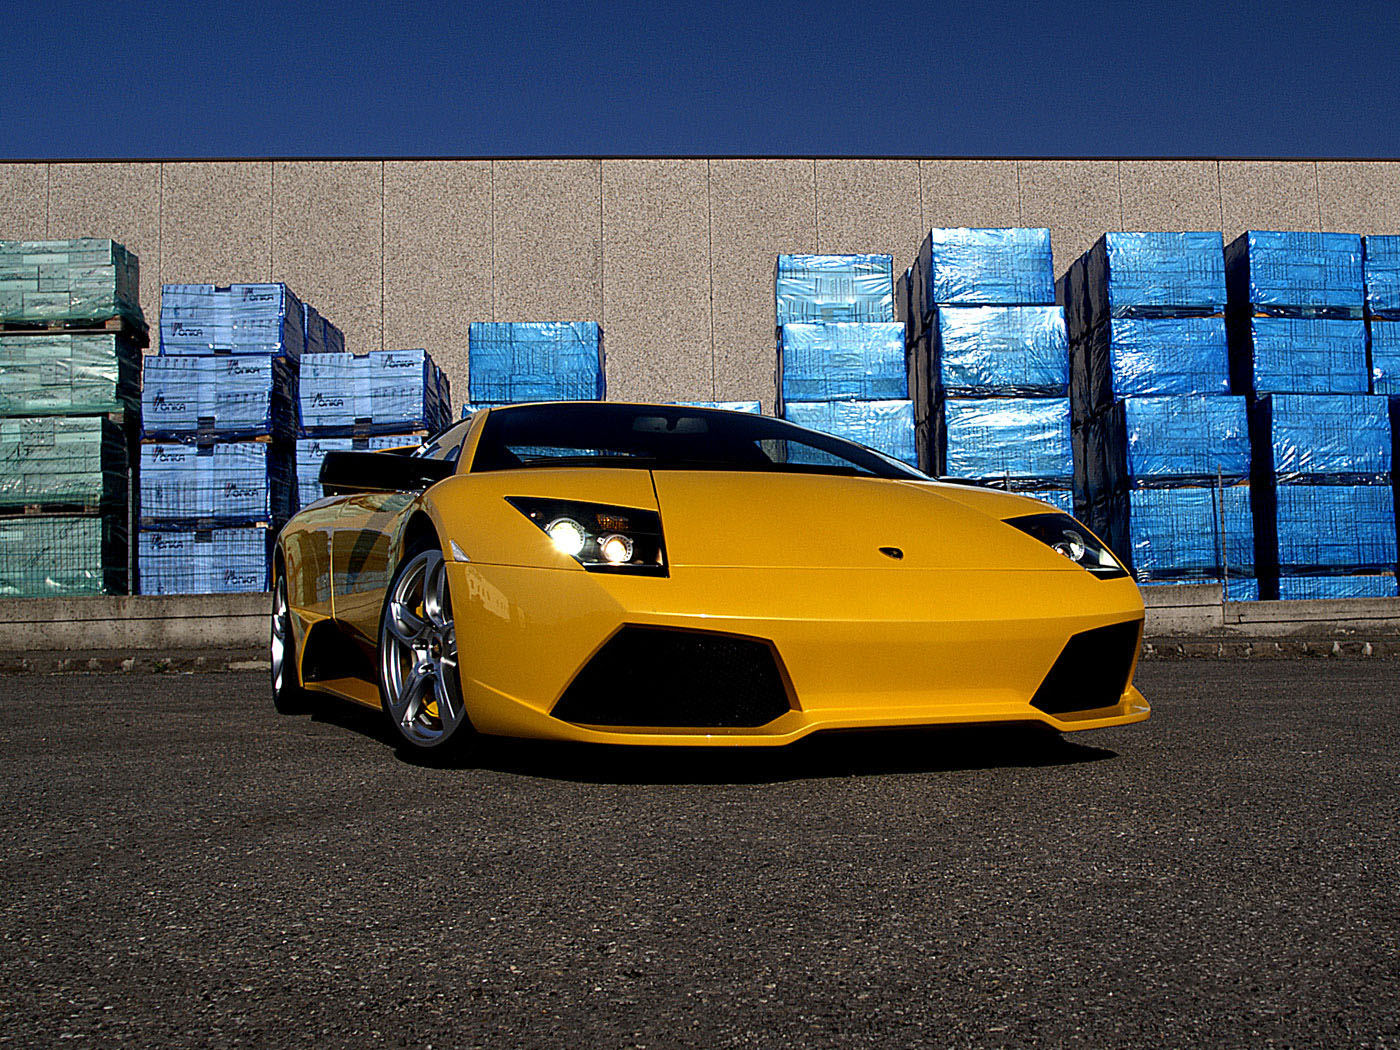 Lamborghini Murcielago LP640 photo 35879